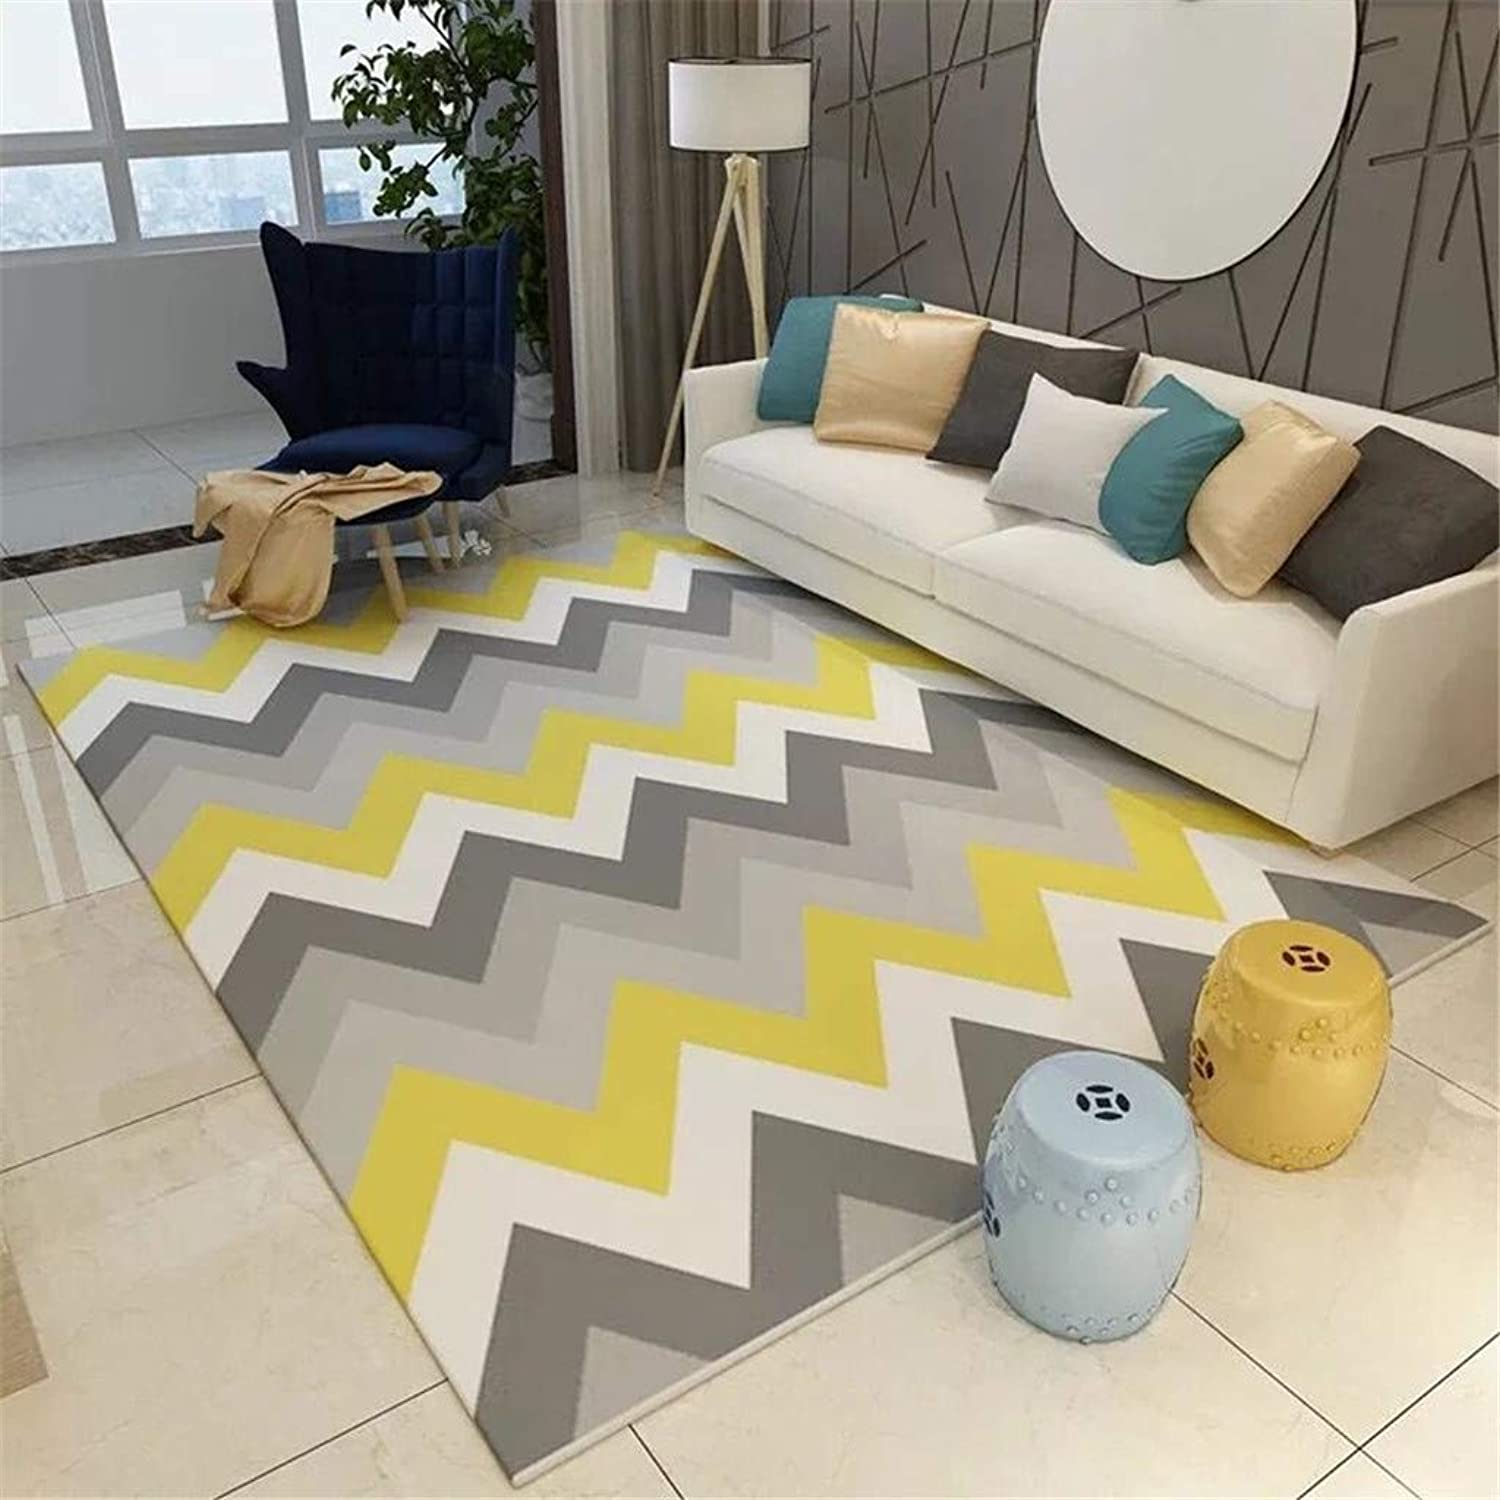 Durable, Modern Minimalist Sofa Coffee Table Cushion Bedroom Living Room Area Carpet (color   G, Size   120X160cm) Welcome Door Mats for Home Hotel (color   H, Size   160x230cm)